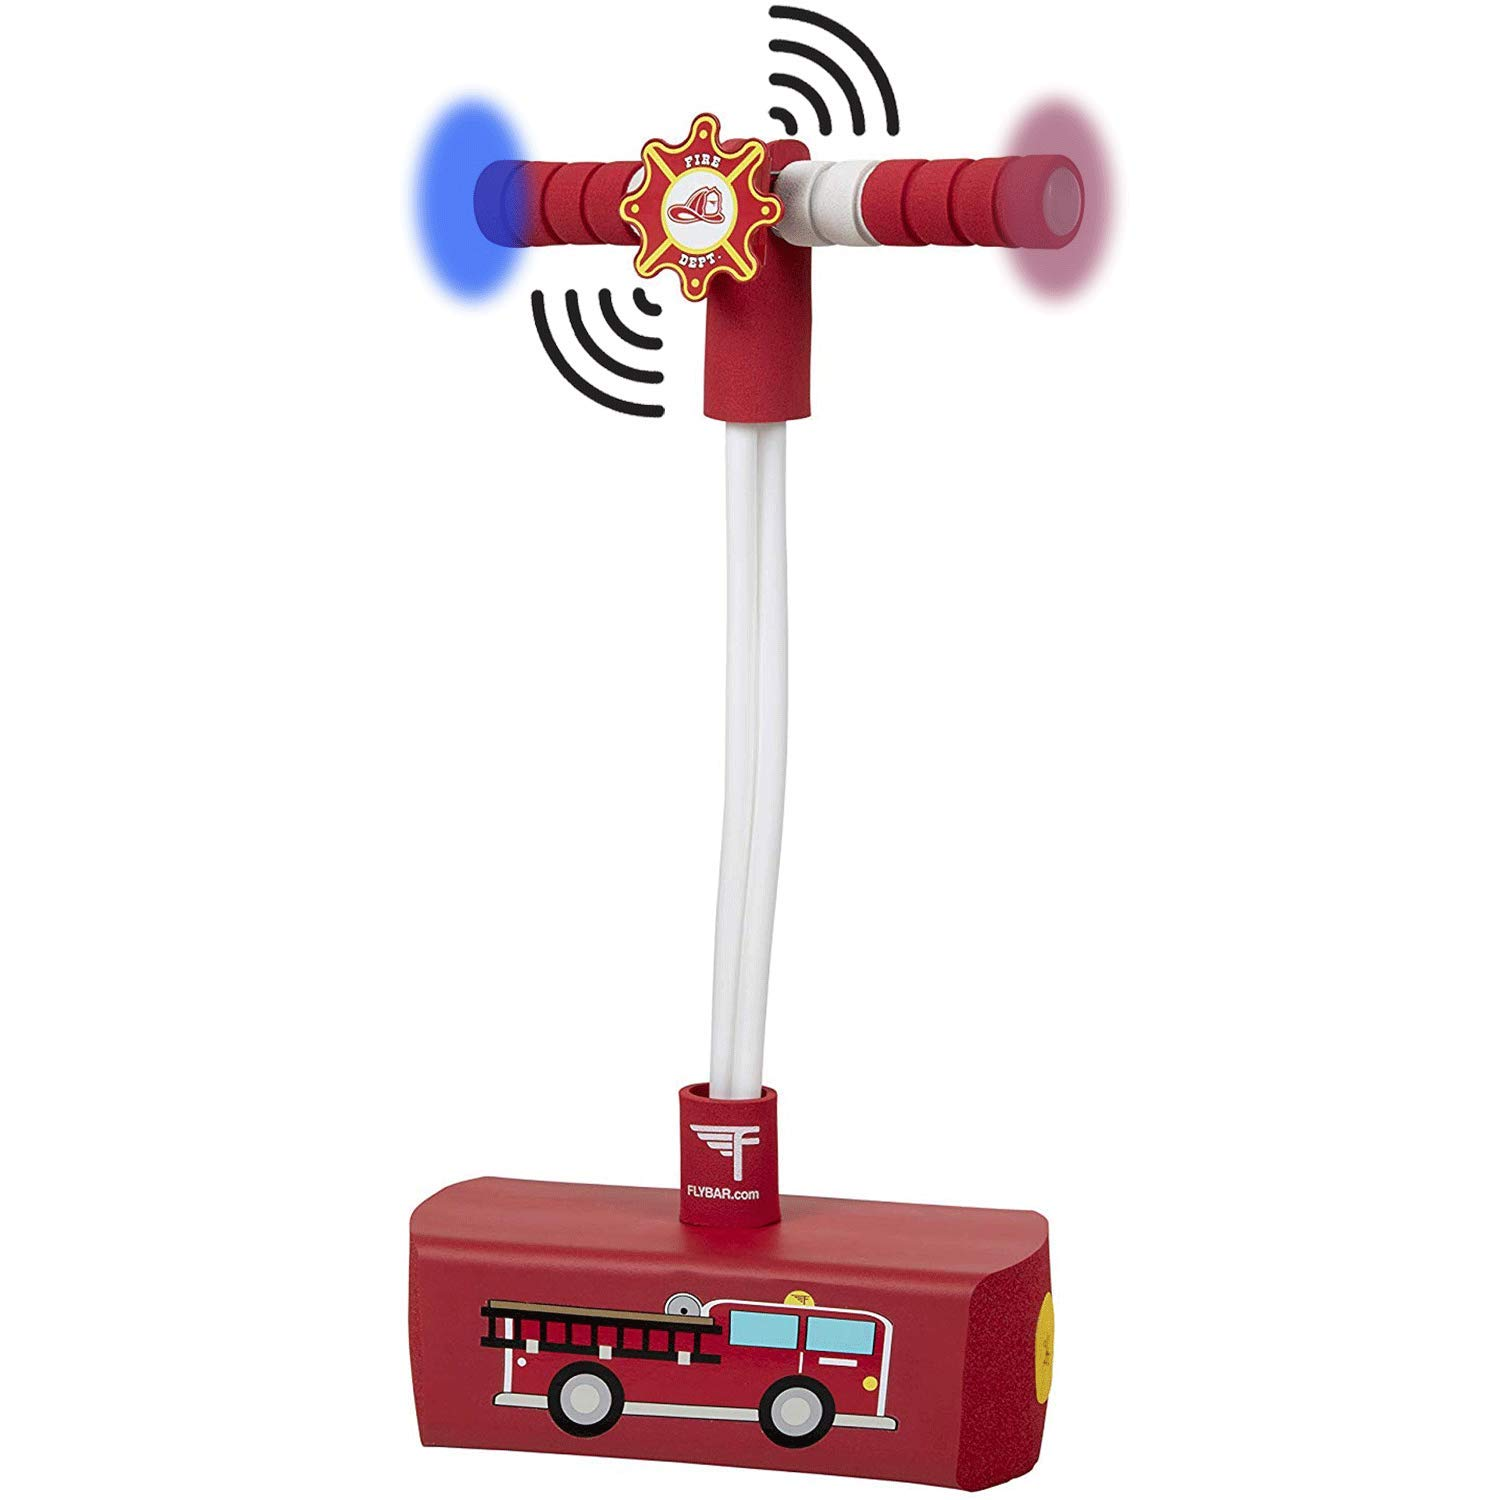 Flybar My First Foam Pogo Jumper for Kids Fun and Safe Pogo Stick for Toddlers, Durable Foam and Bungee Jumper for Ages 3 and up, Supports up to 250lbs (Fire Truck)